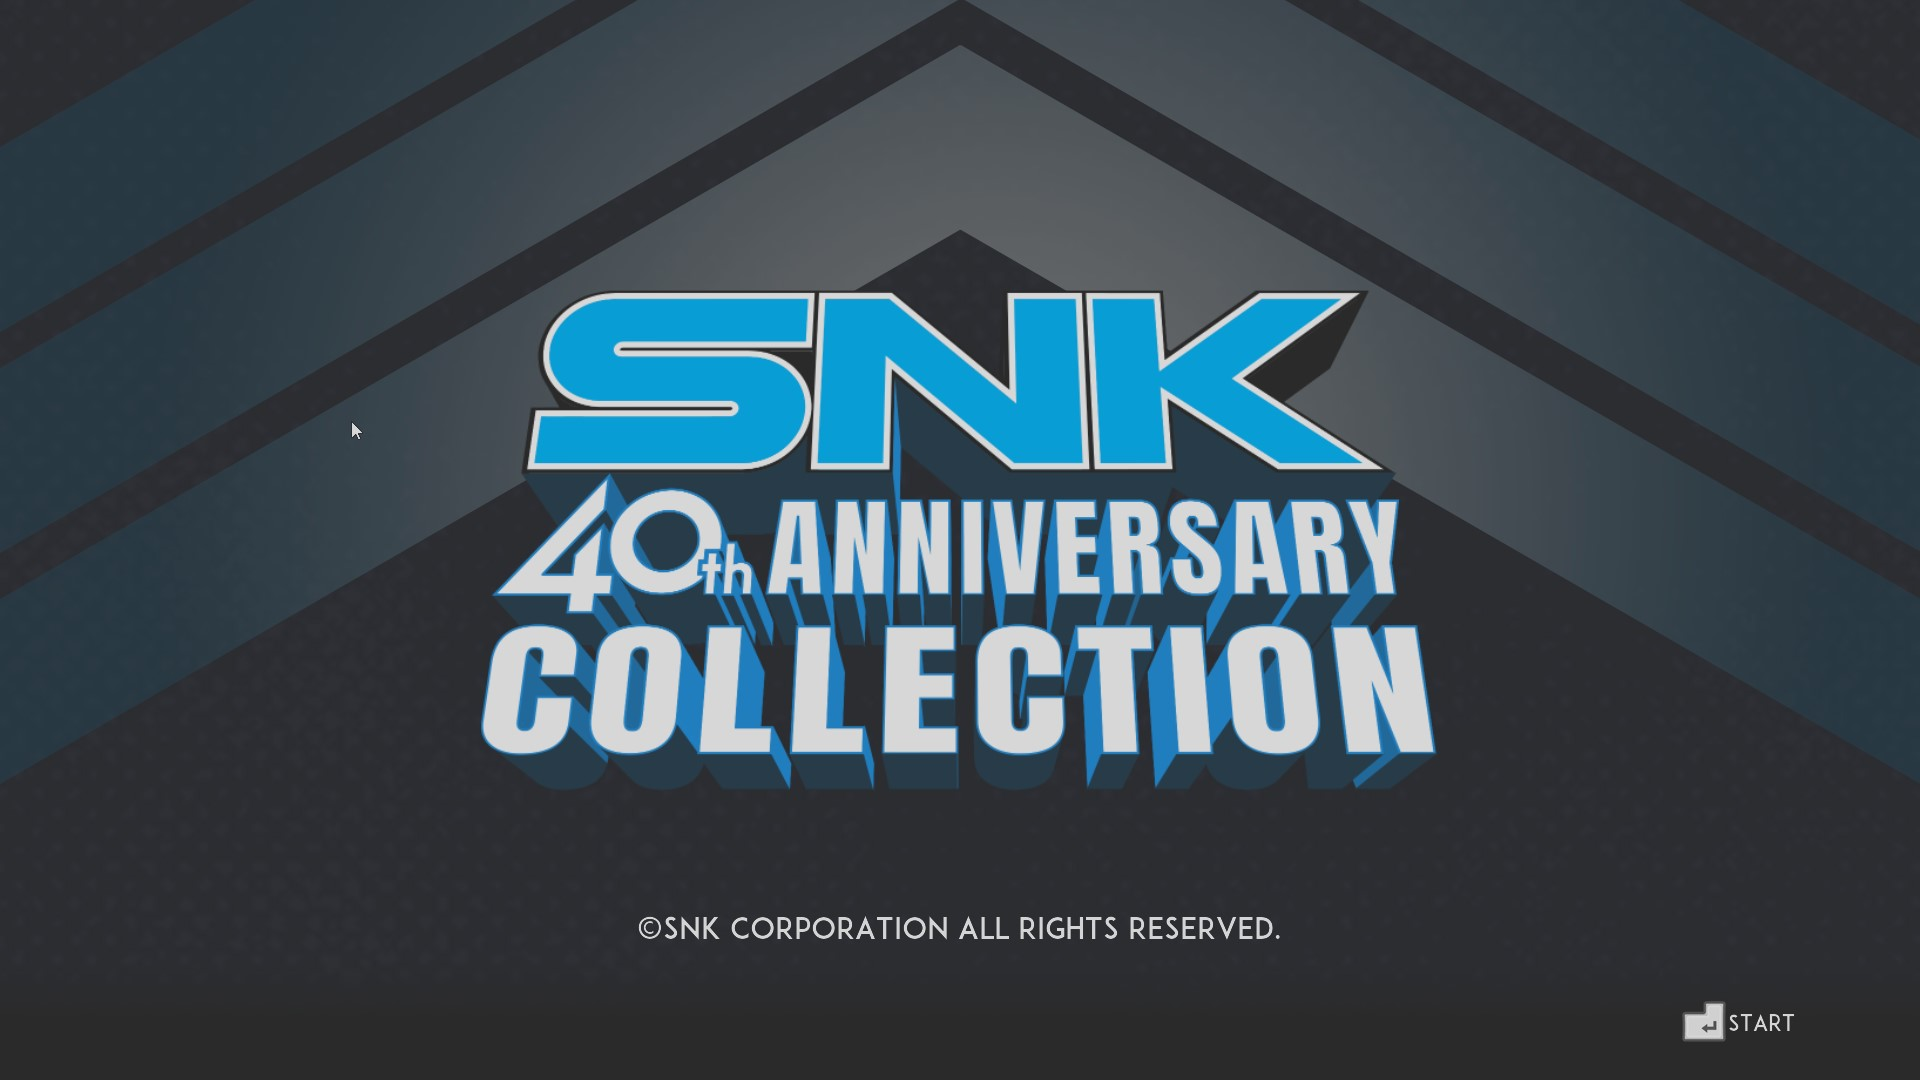 SNK 40th Anniversary Collection: Fantasy 2,540 points